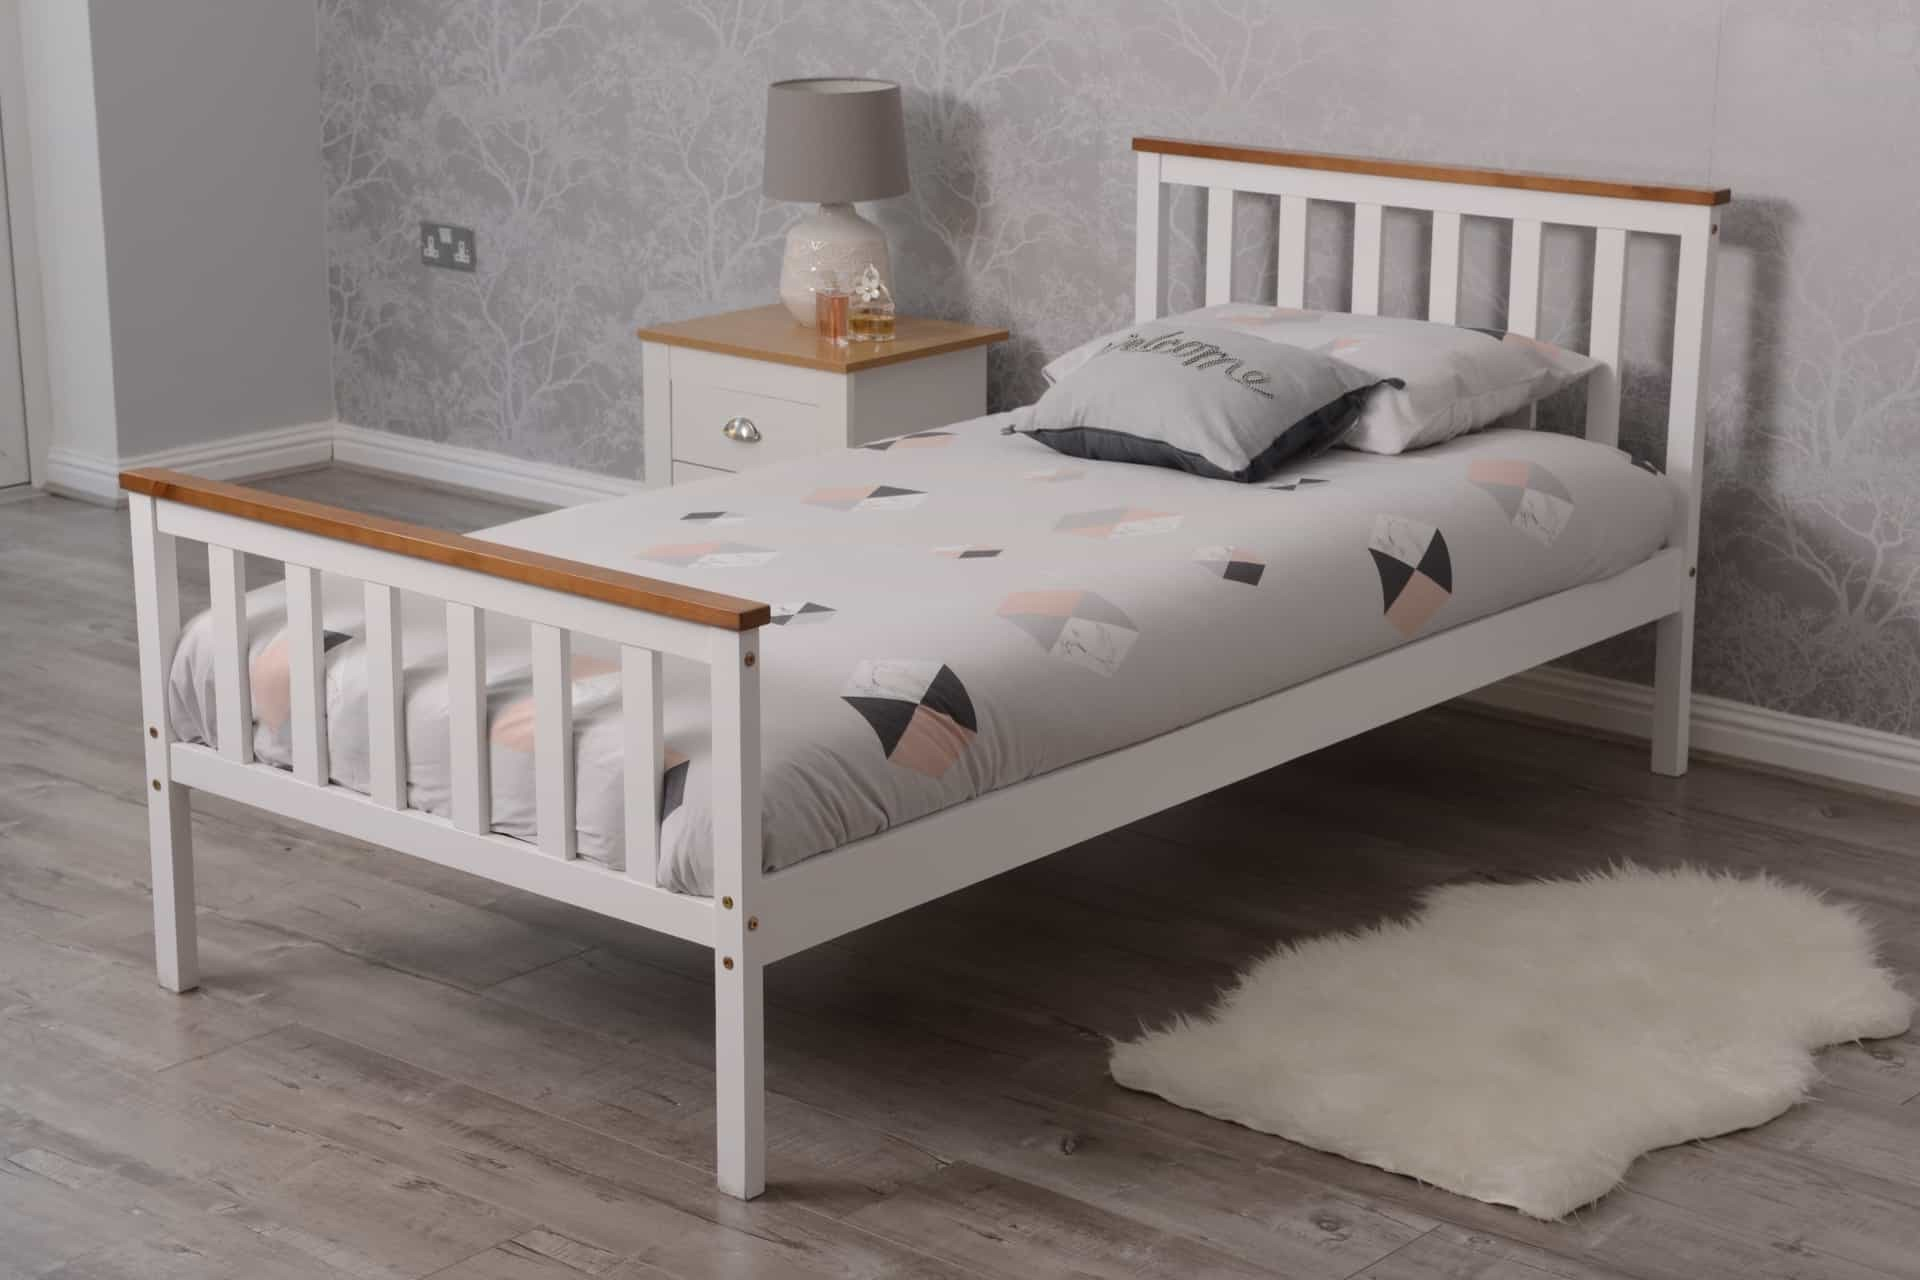 What Is The Length Of A Single Bed Single Bed Pine Wood Bed White With Oak Top With Memory Foam